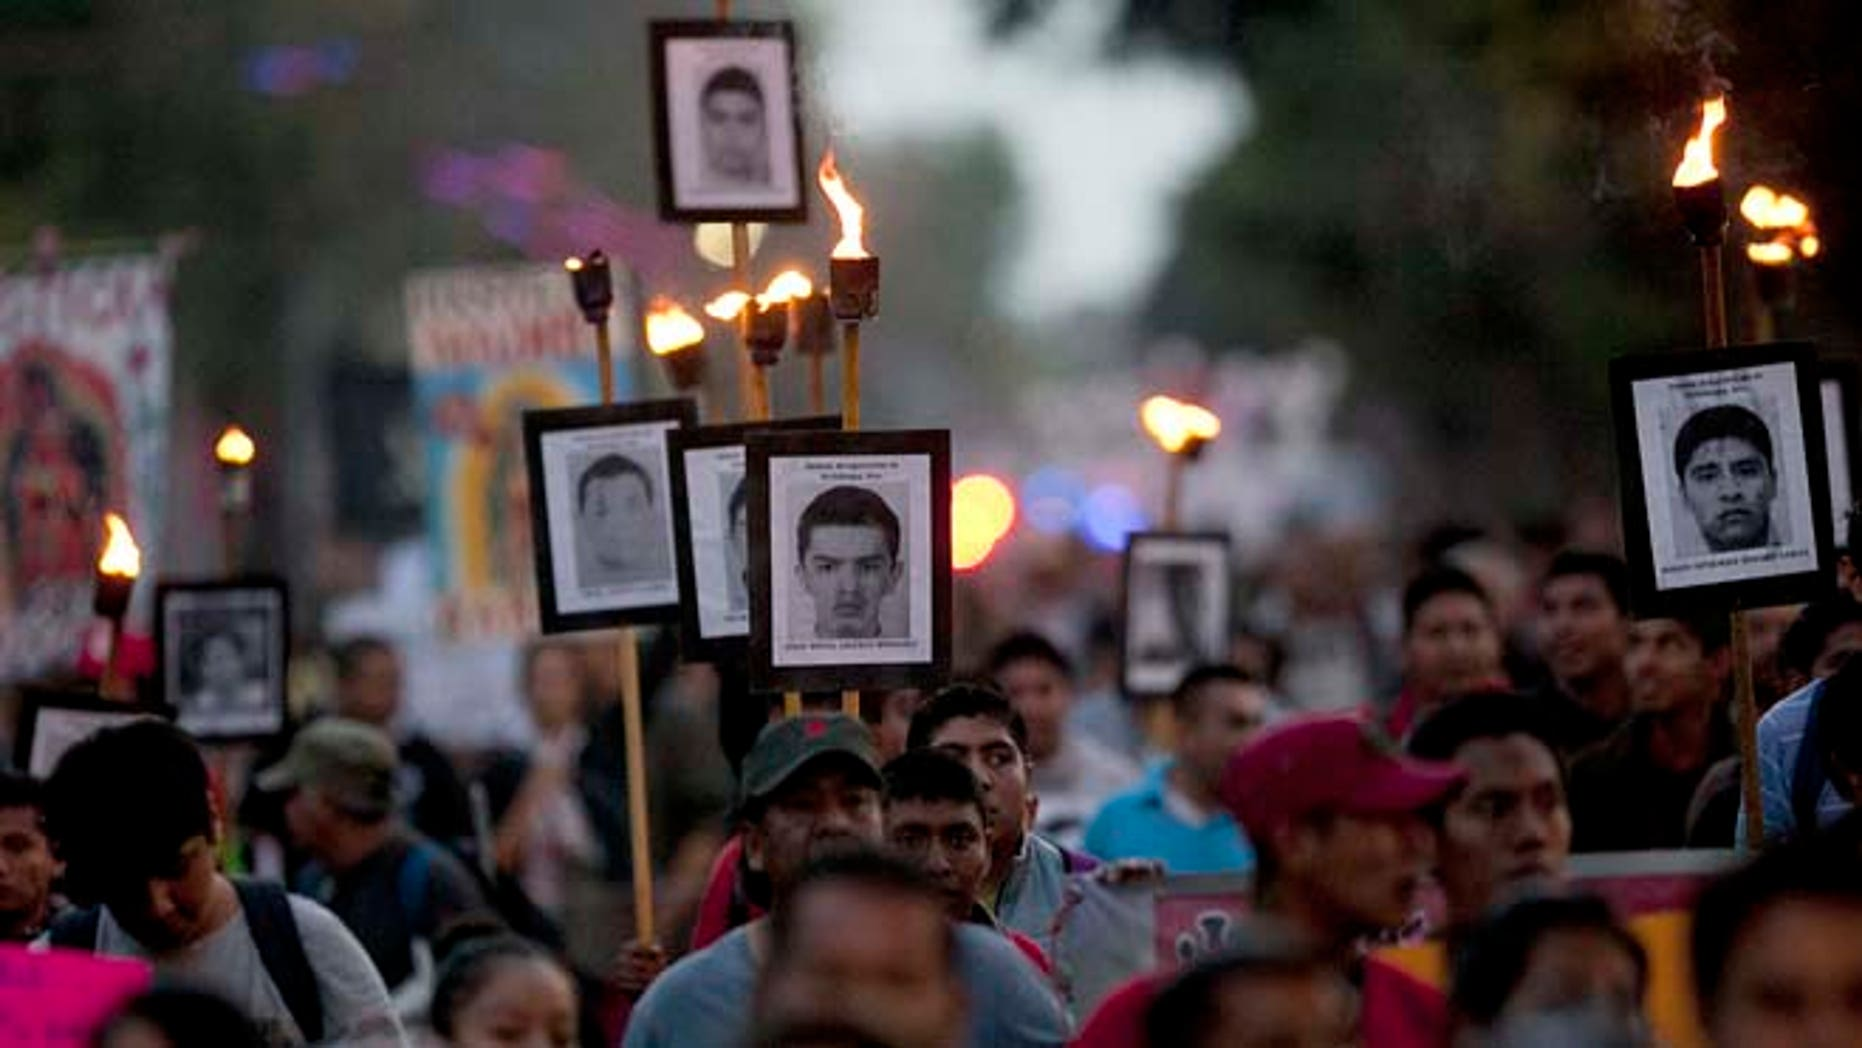 FILE - In this Dec. 26, 2015, file photo, relatives of the 43 missing students from the Isidro Burgos rural teachers college march holding pictures of their missing loved ones during a protest in Mexico City. An appeals court ruling is threatening to derail Mexicoâs effort to prosecute suspects in one of its most notorious crimes of recent years: the disappearance and presumed murder of the 43 students in Guerrero state. (AP Photo/Marco Ugarte, File)